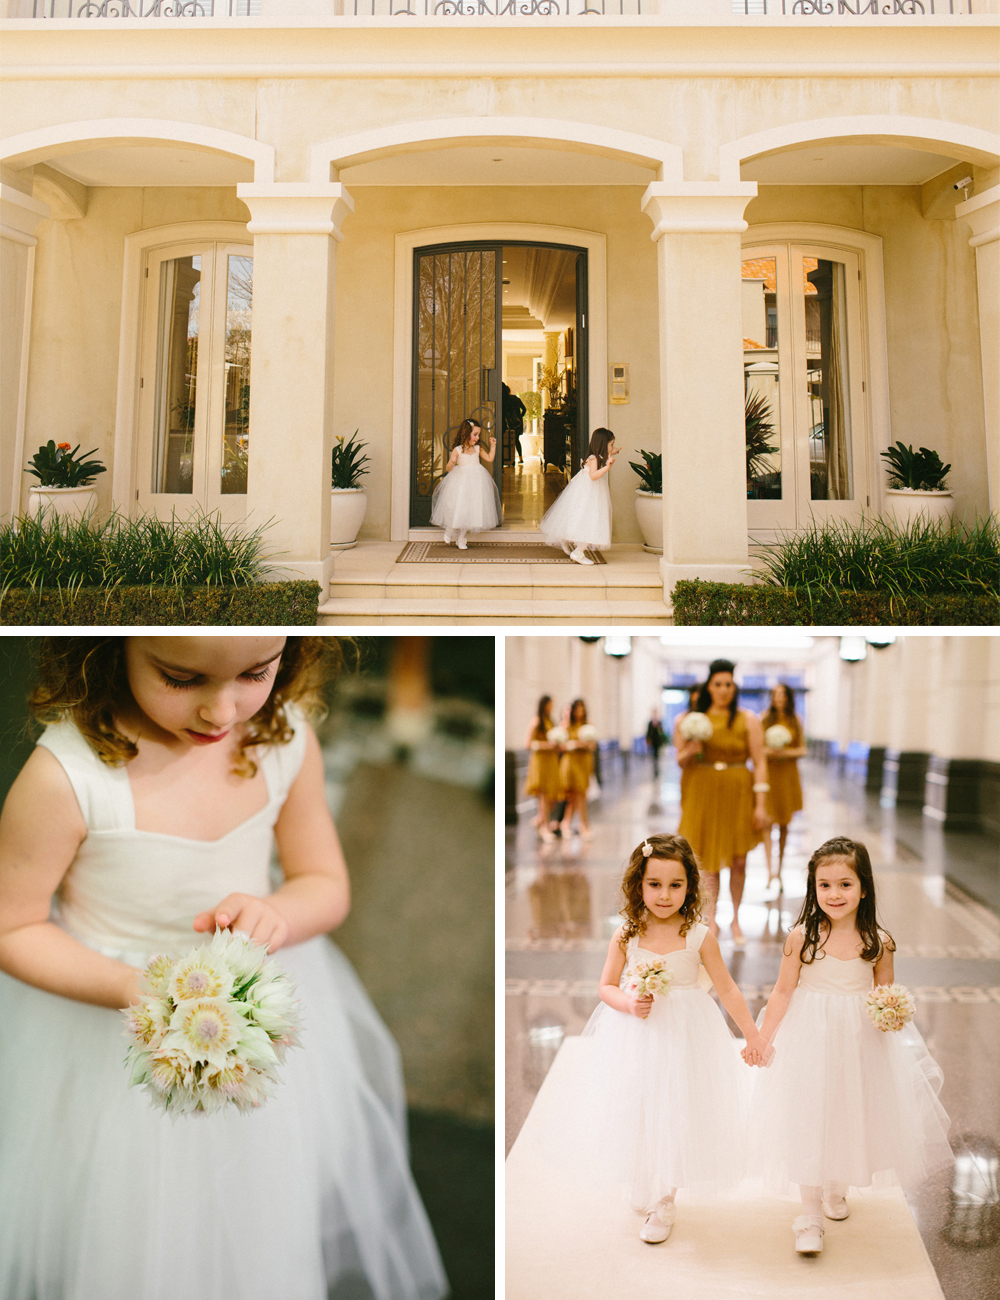 wedding flowergirls